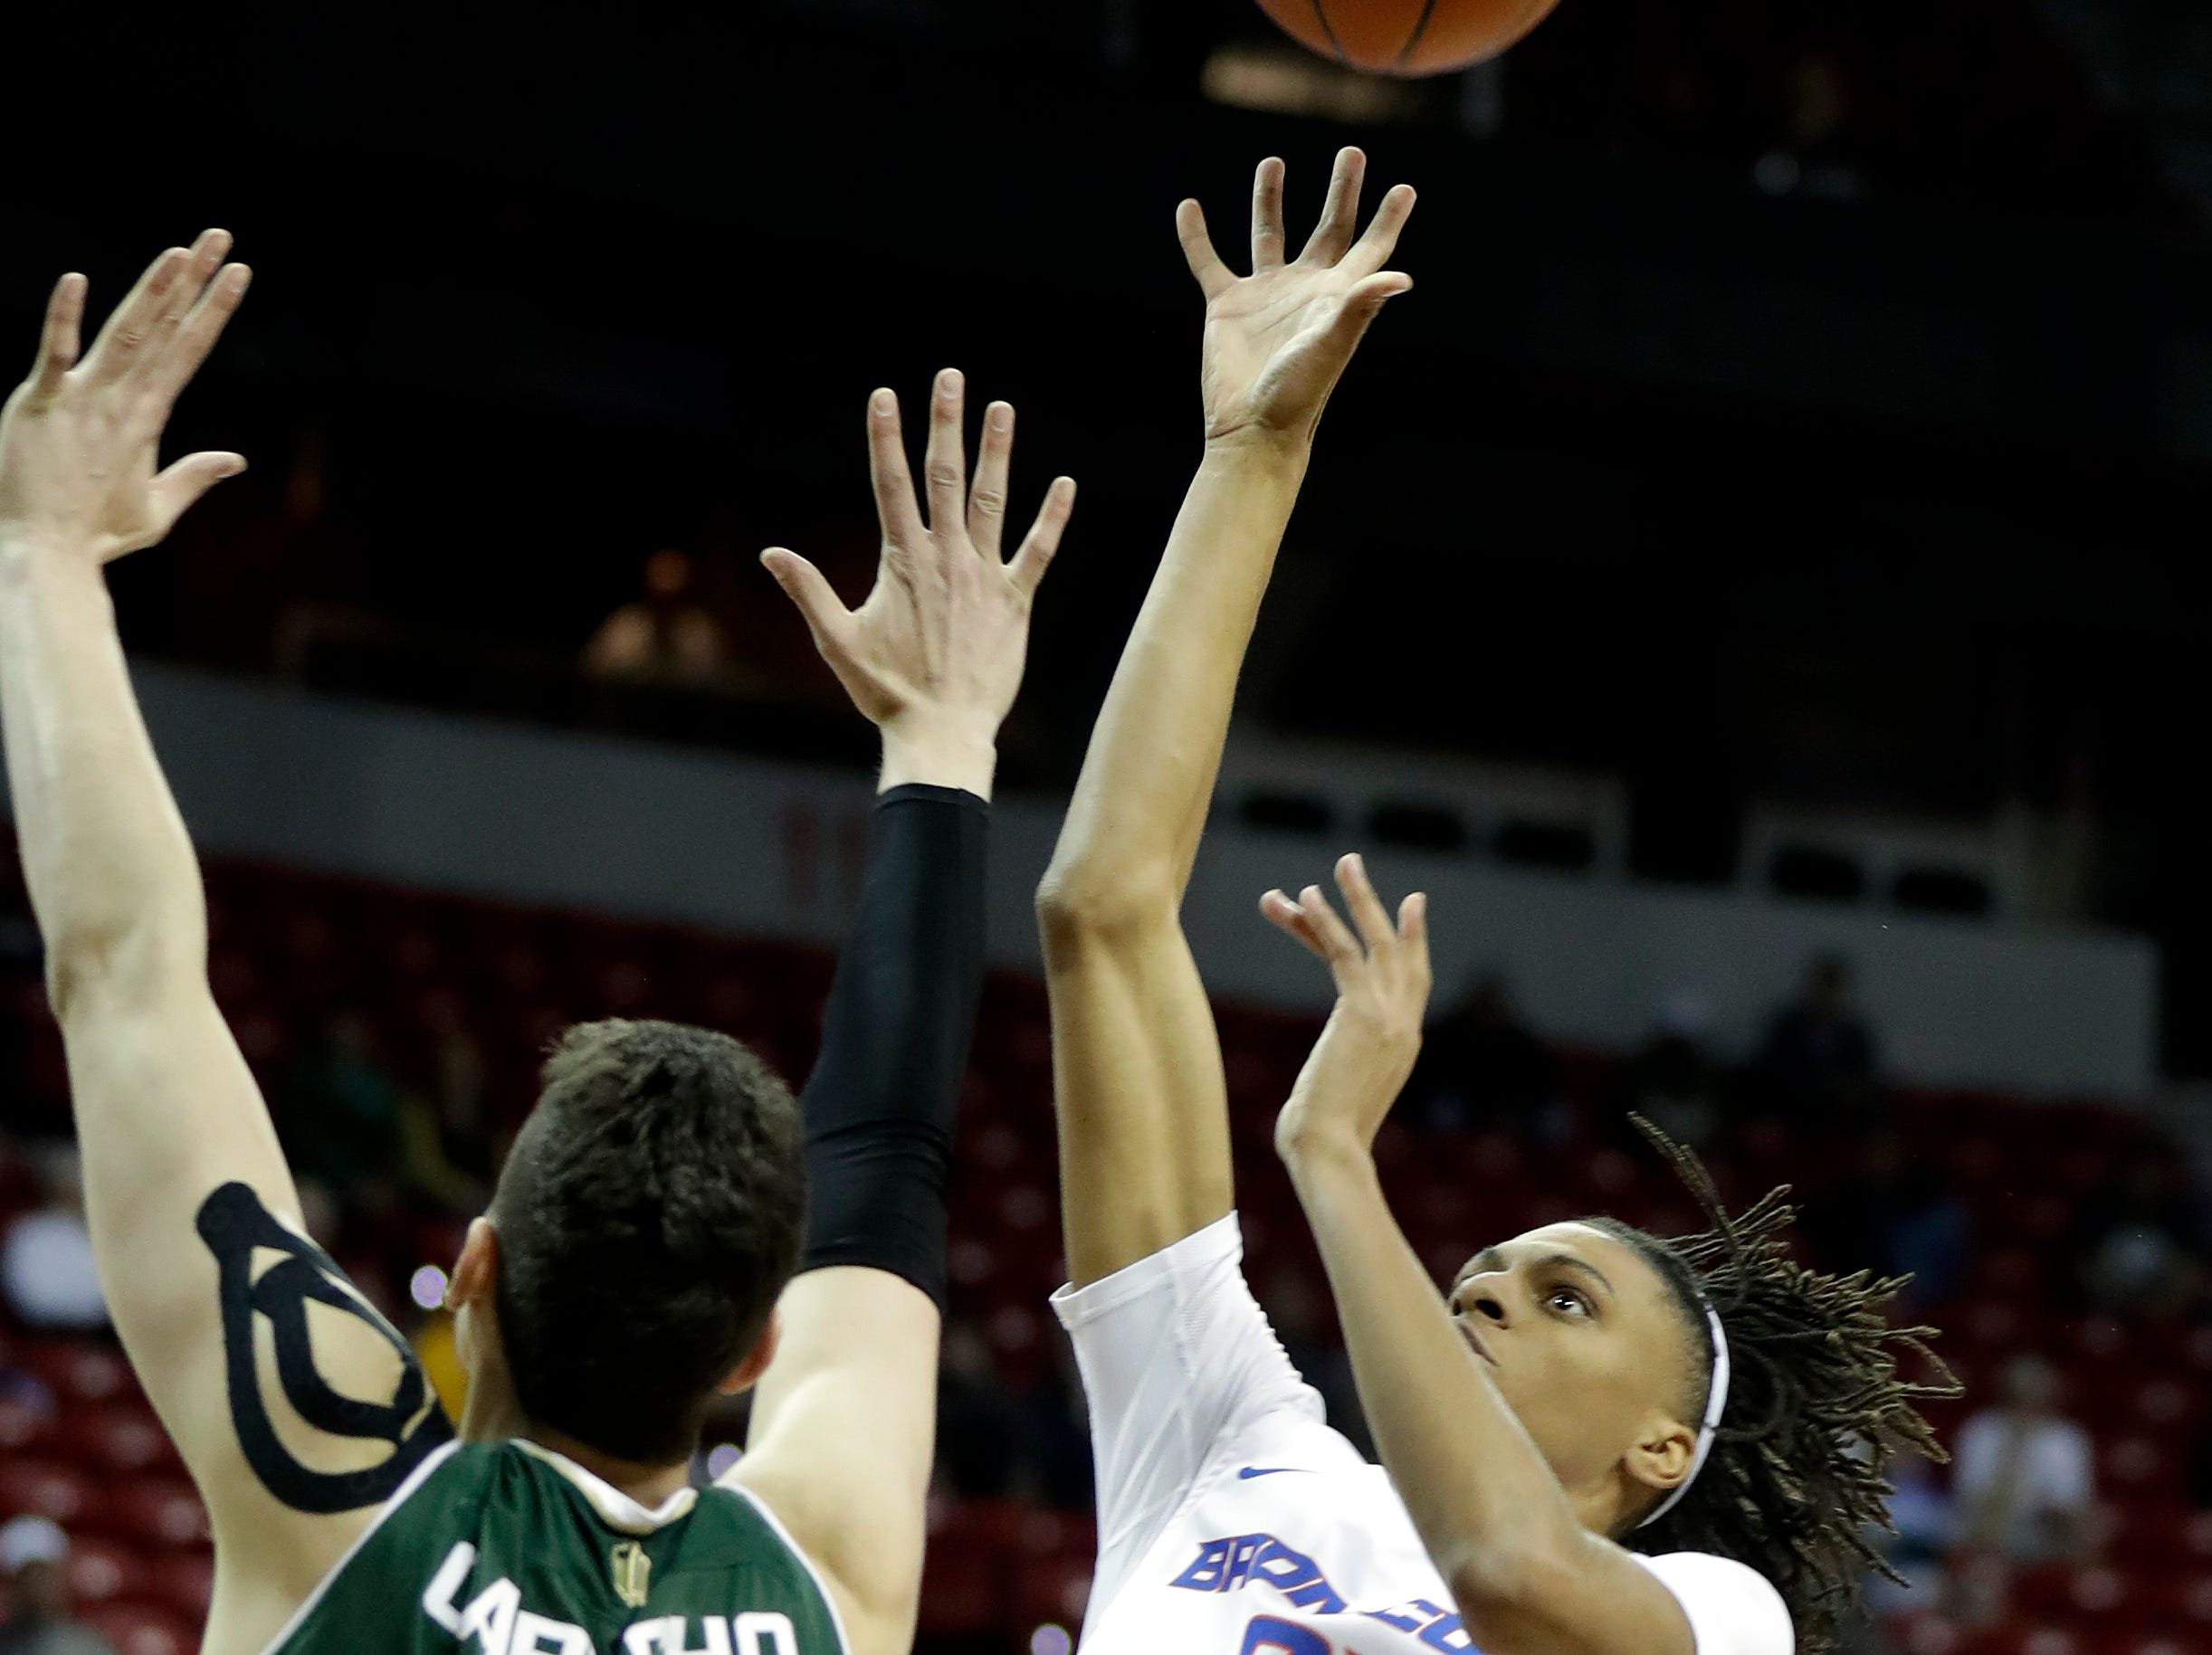 Colorado State's Nico Carvacho (32) covers a shot from Boise State's Derrick Alston (21) during the first half of an NCAA college basketball game in the Mountain West Conference tournament, Wednesday, March 13, 2019, in Las Vegas.